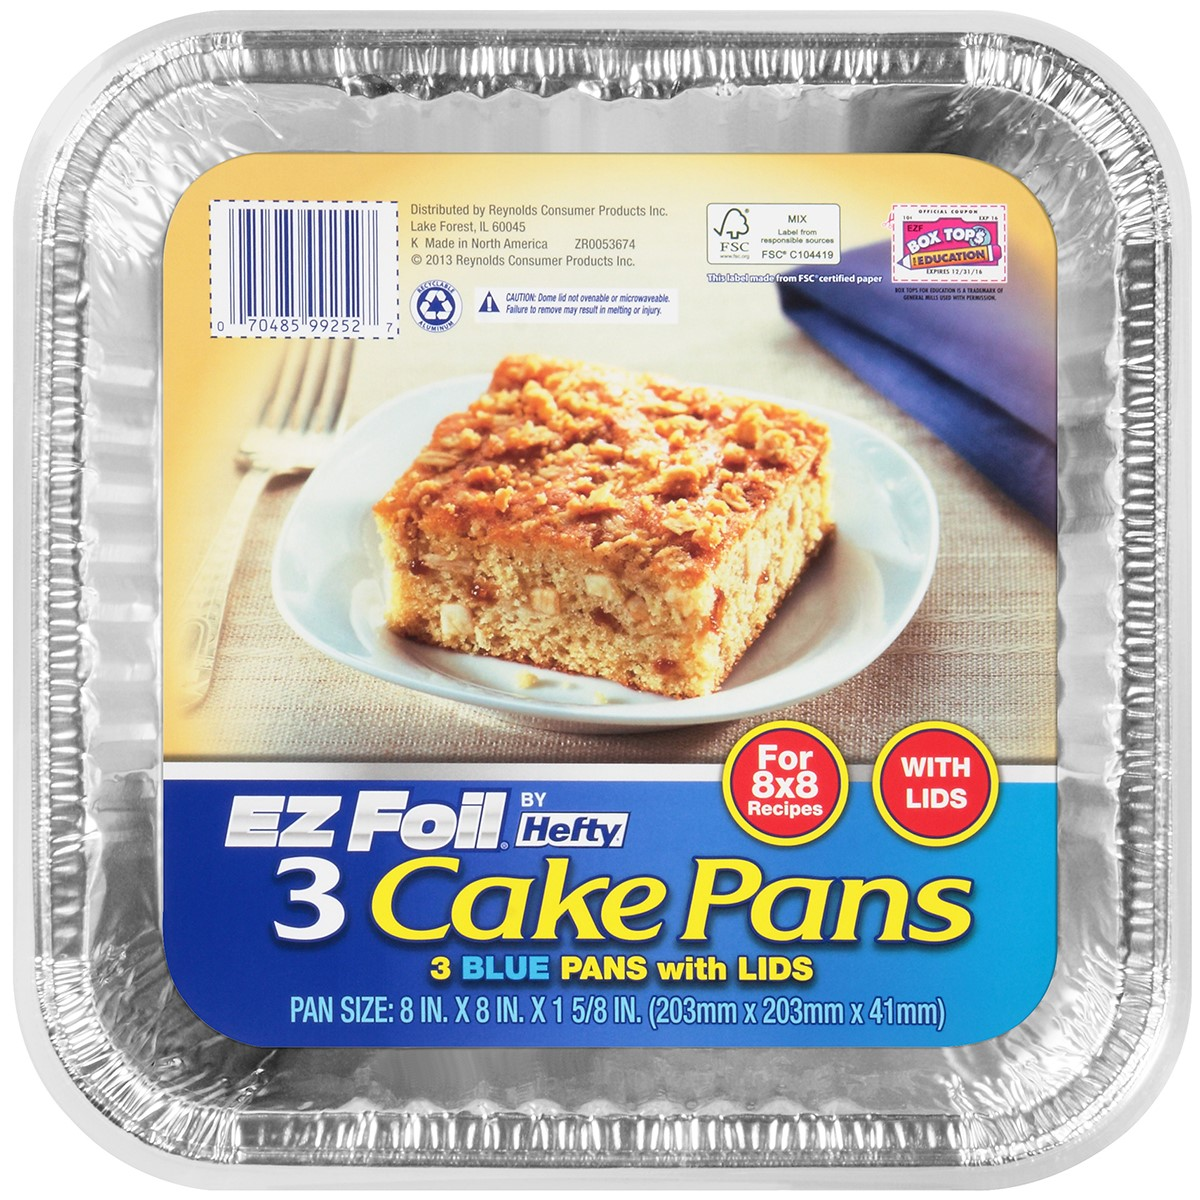 Square Cake Pan, Blue, 3 Count